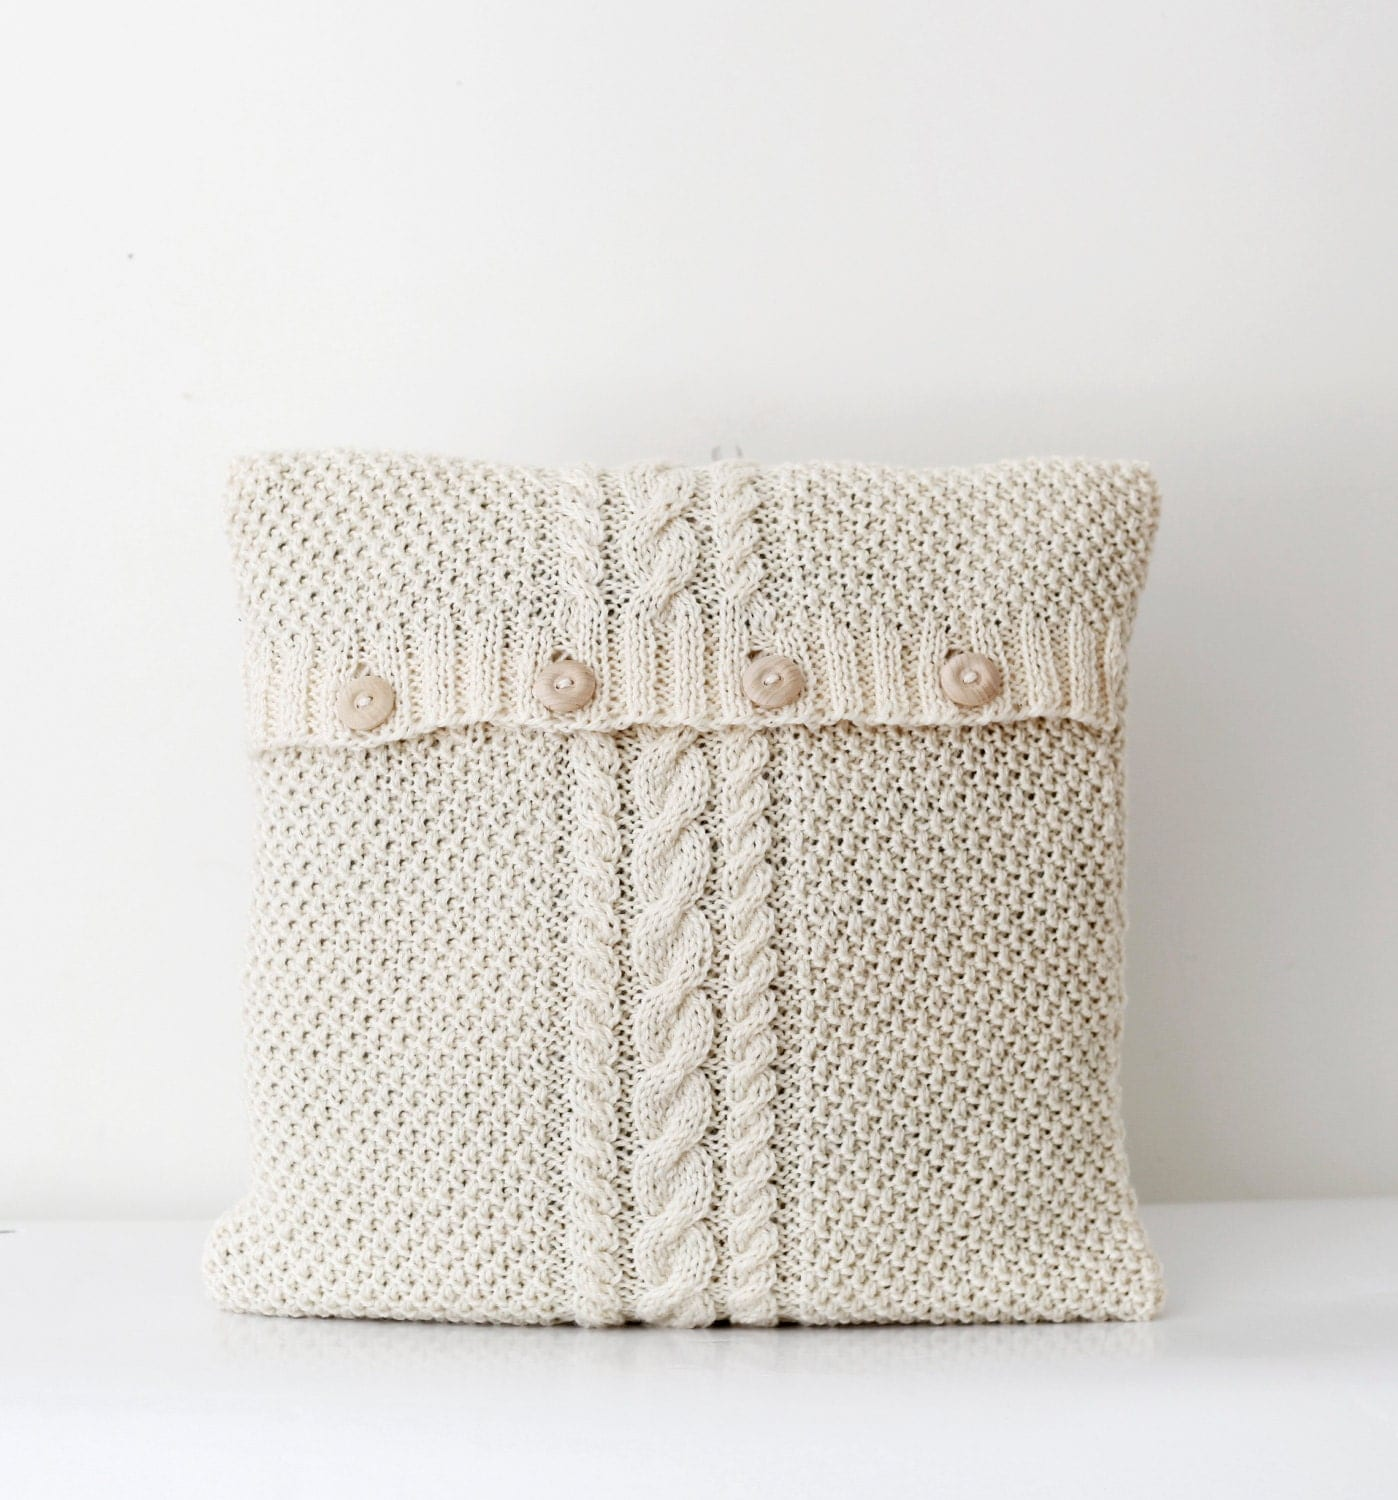 Modern Knitted Pillow : Cable hand knitted new pillow cover white milk decorative